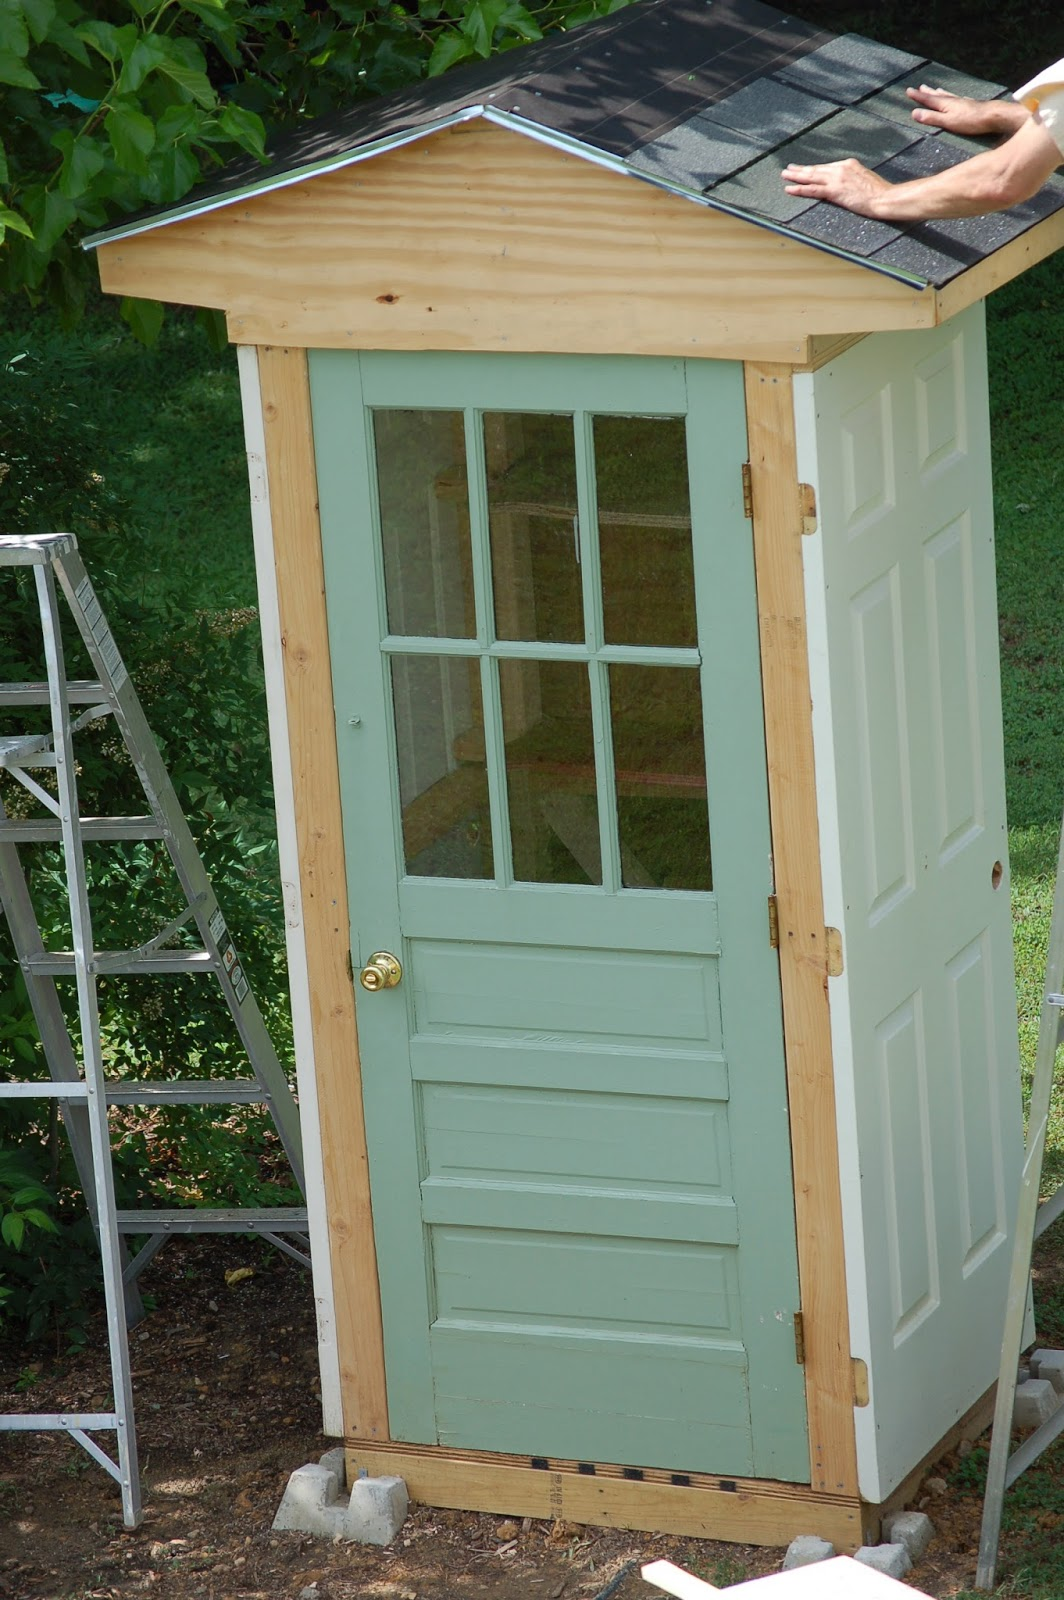 Diy Garden Tool Shed : A great garden shed out of old doors home diy fixes